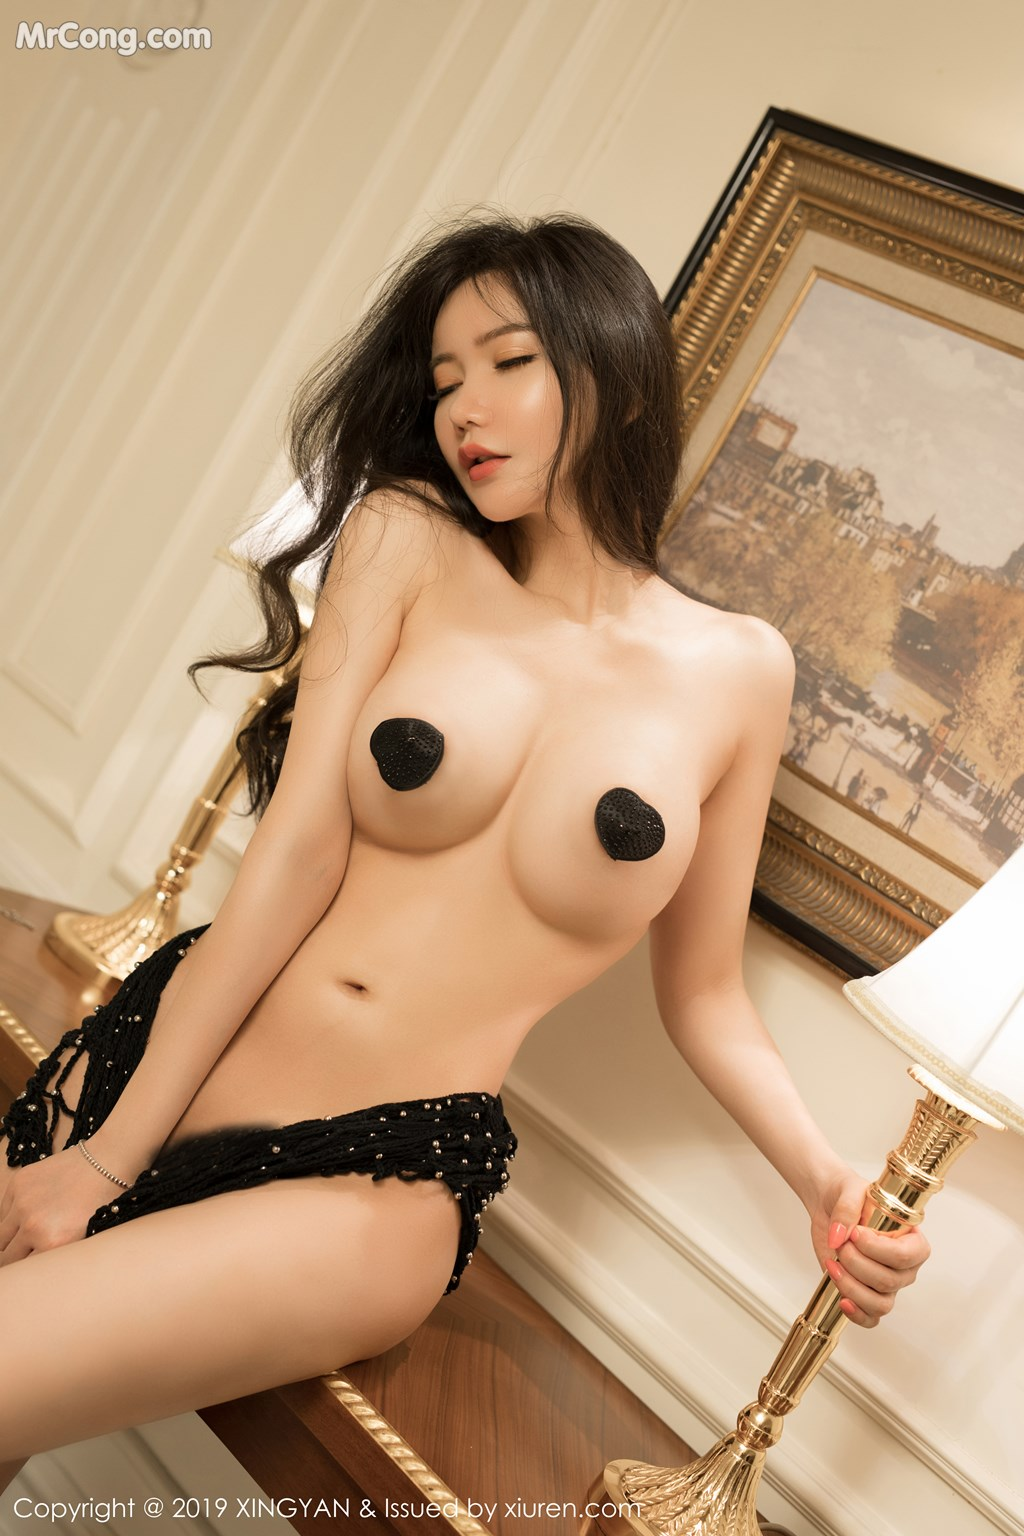 Image XingYan-Vol.126-MrCong.com-030 in post XingYan Vol.126: 心妍小公主 (36 ảnh)